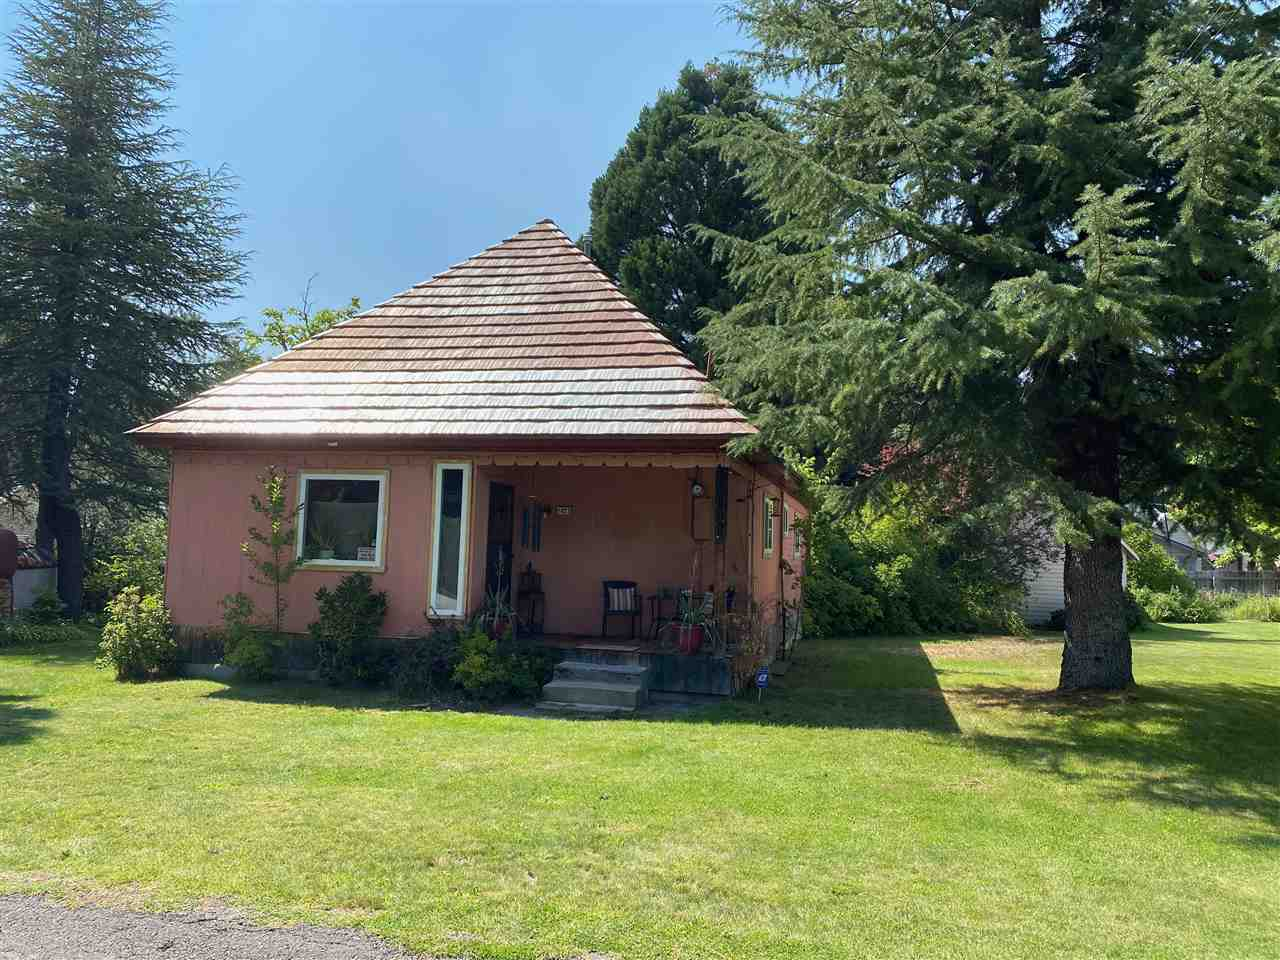 Lots of potential for this Sweet McCloud home that sits near the end of cul-de- sac. Excellent location .29 acre corner lot that has trees, water feature, under ground sprinkler system, larger shed, plenty of space to park an RV, chain link fence, and a one car garage off alley access. You can sit in the front yard and hear the creek across the street. This home sports a large kitchen and living room, wide hallway, nice sized bedrooms, newer vinyl windows. Great Opportunity to get a home in the Beautiful town of McCloud.